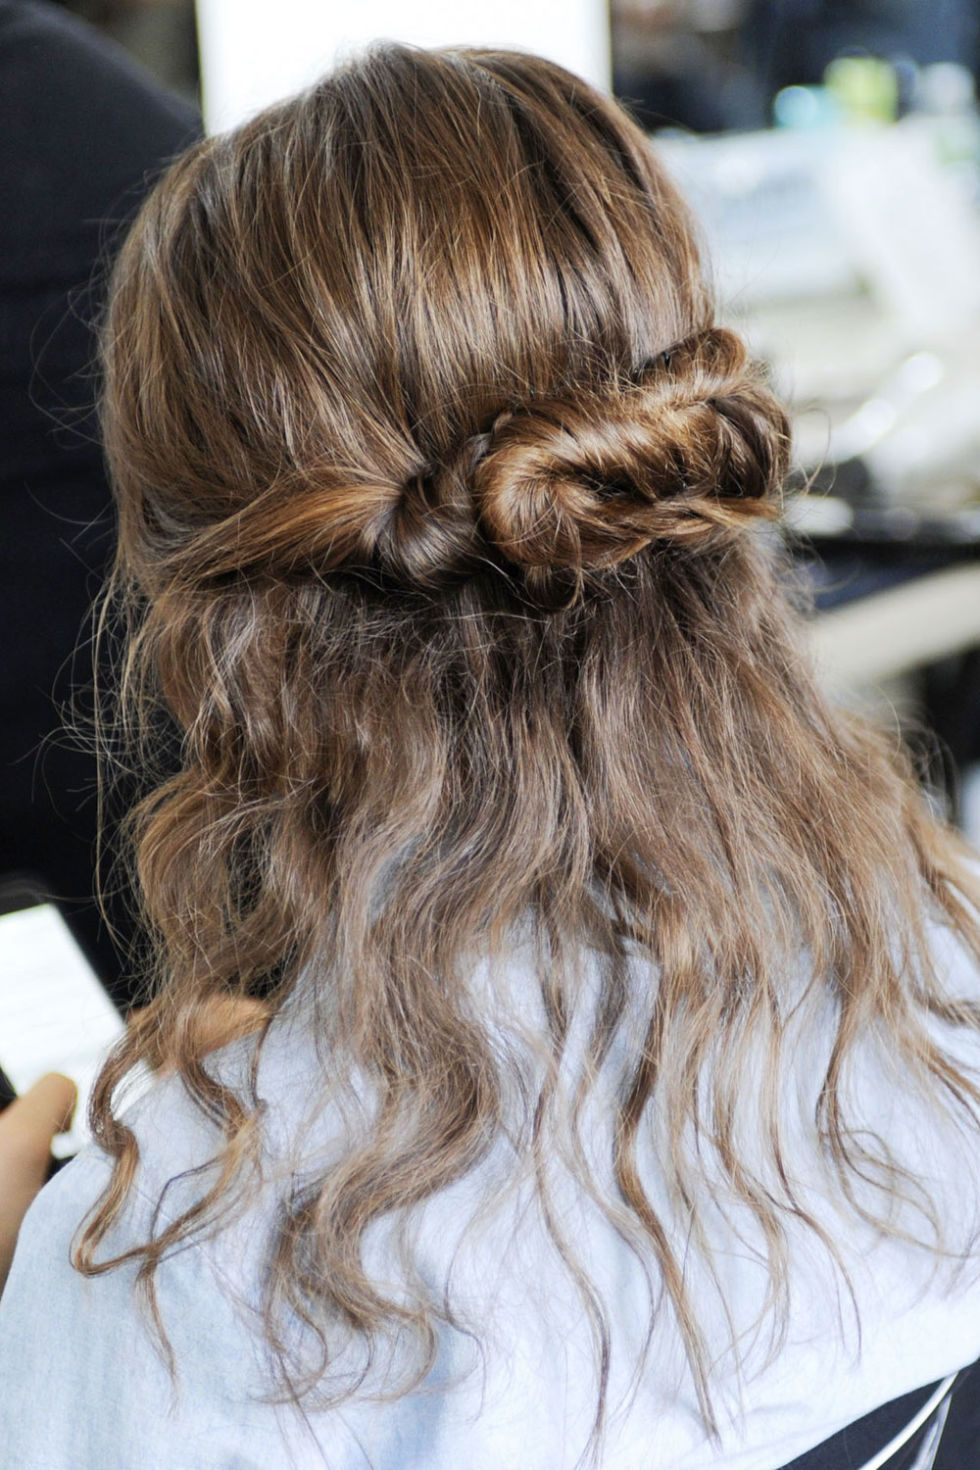 Wedding Hairstyles for Brides Guests and More Hair inspiration